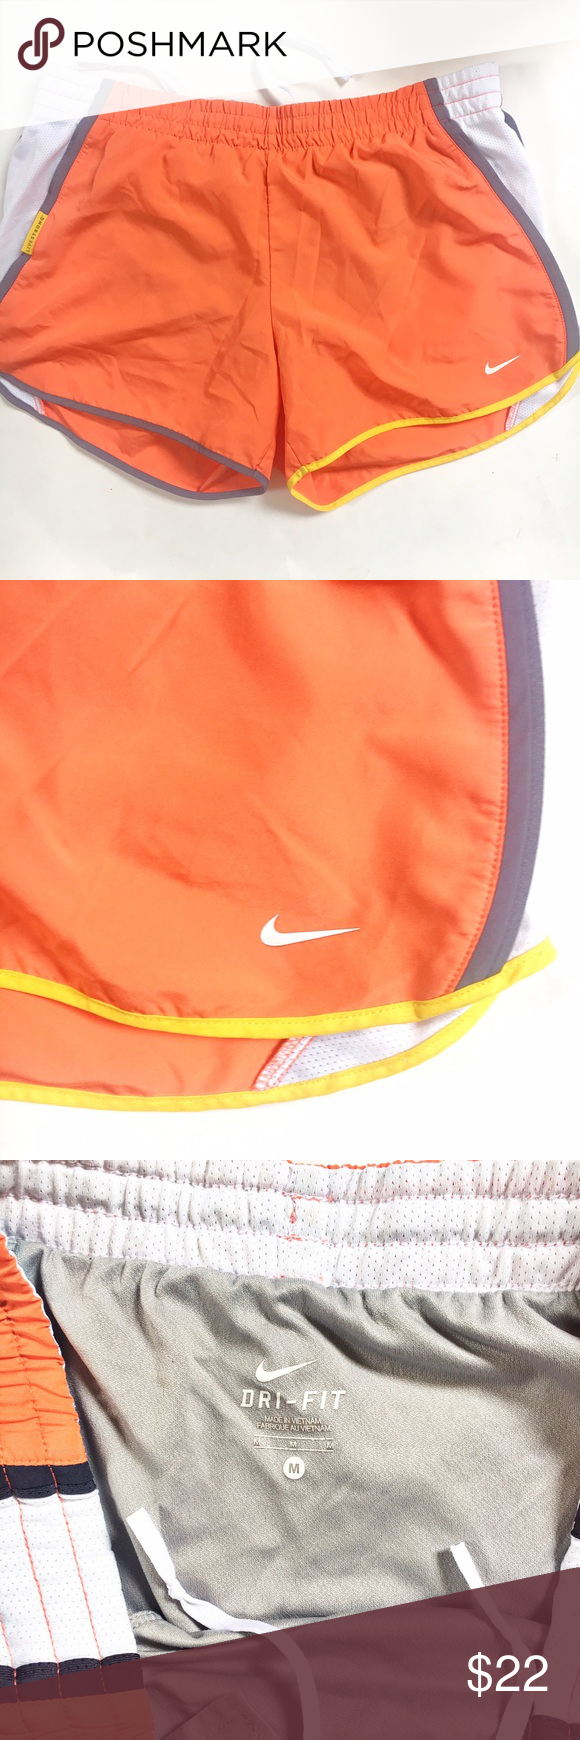 Nike dry fit shorts Perfect condition, no signs of wear with pockets built inside for your protection 😀 Nike Shorts